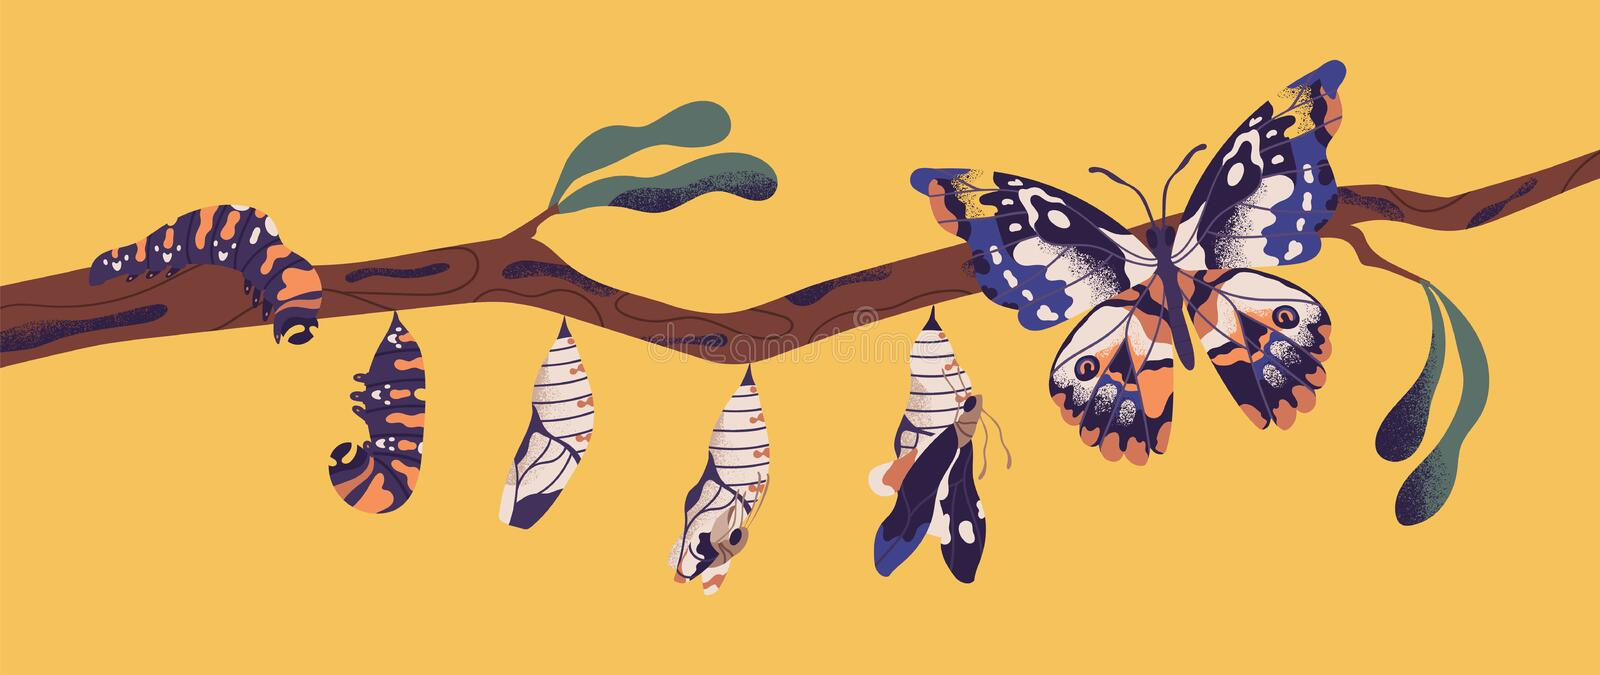 Butterfly life cycle - caterpillar, larva, pupa, imago eclosion. Stages of metamorphosis, growth and transformation. Process of winged insect on tree branch stock illustration